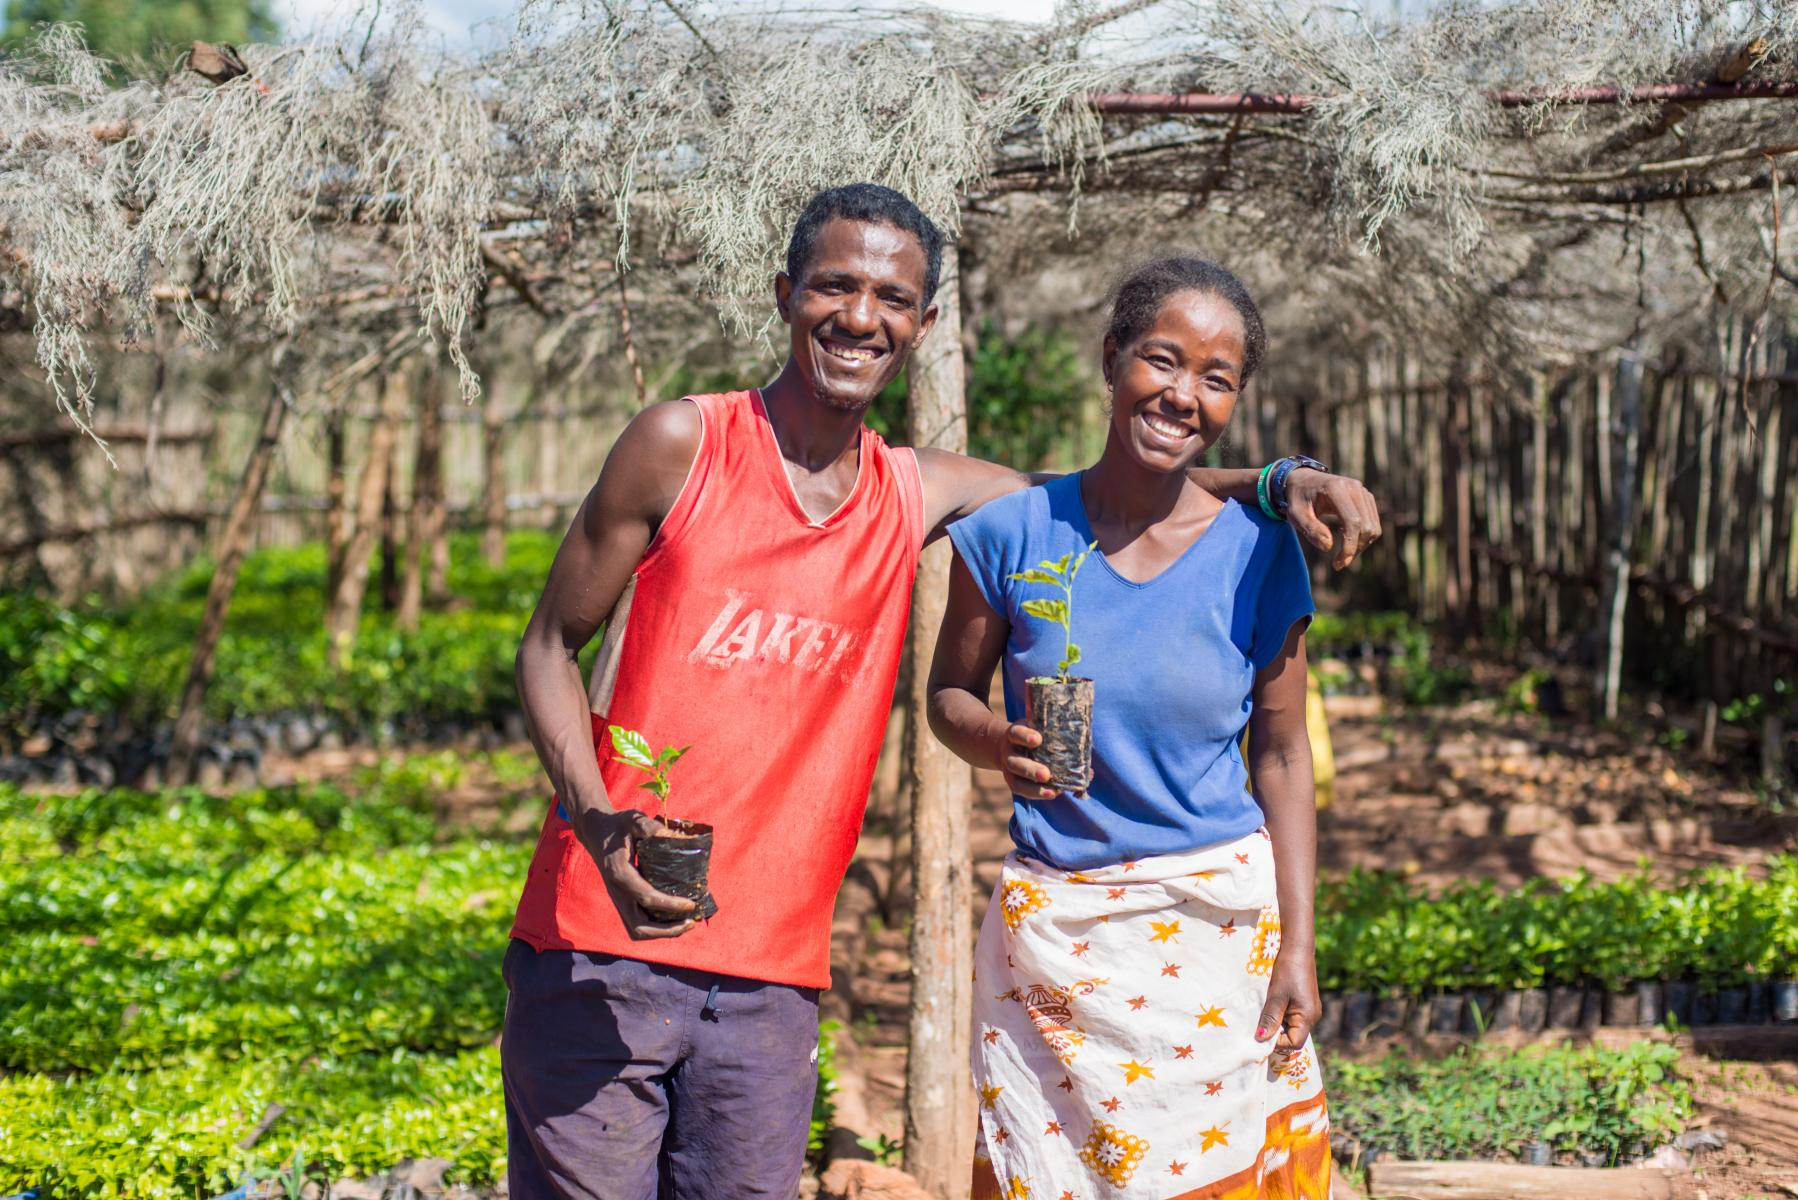 A man and woman pose for the camera in a nursery, smiling and holding small trees.